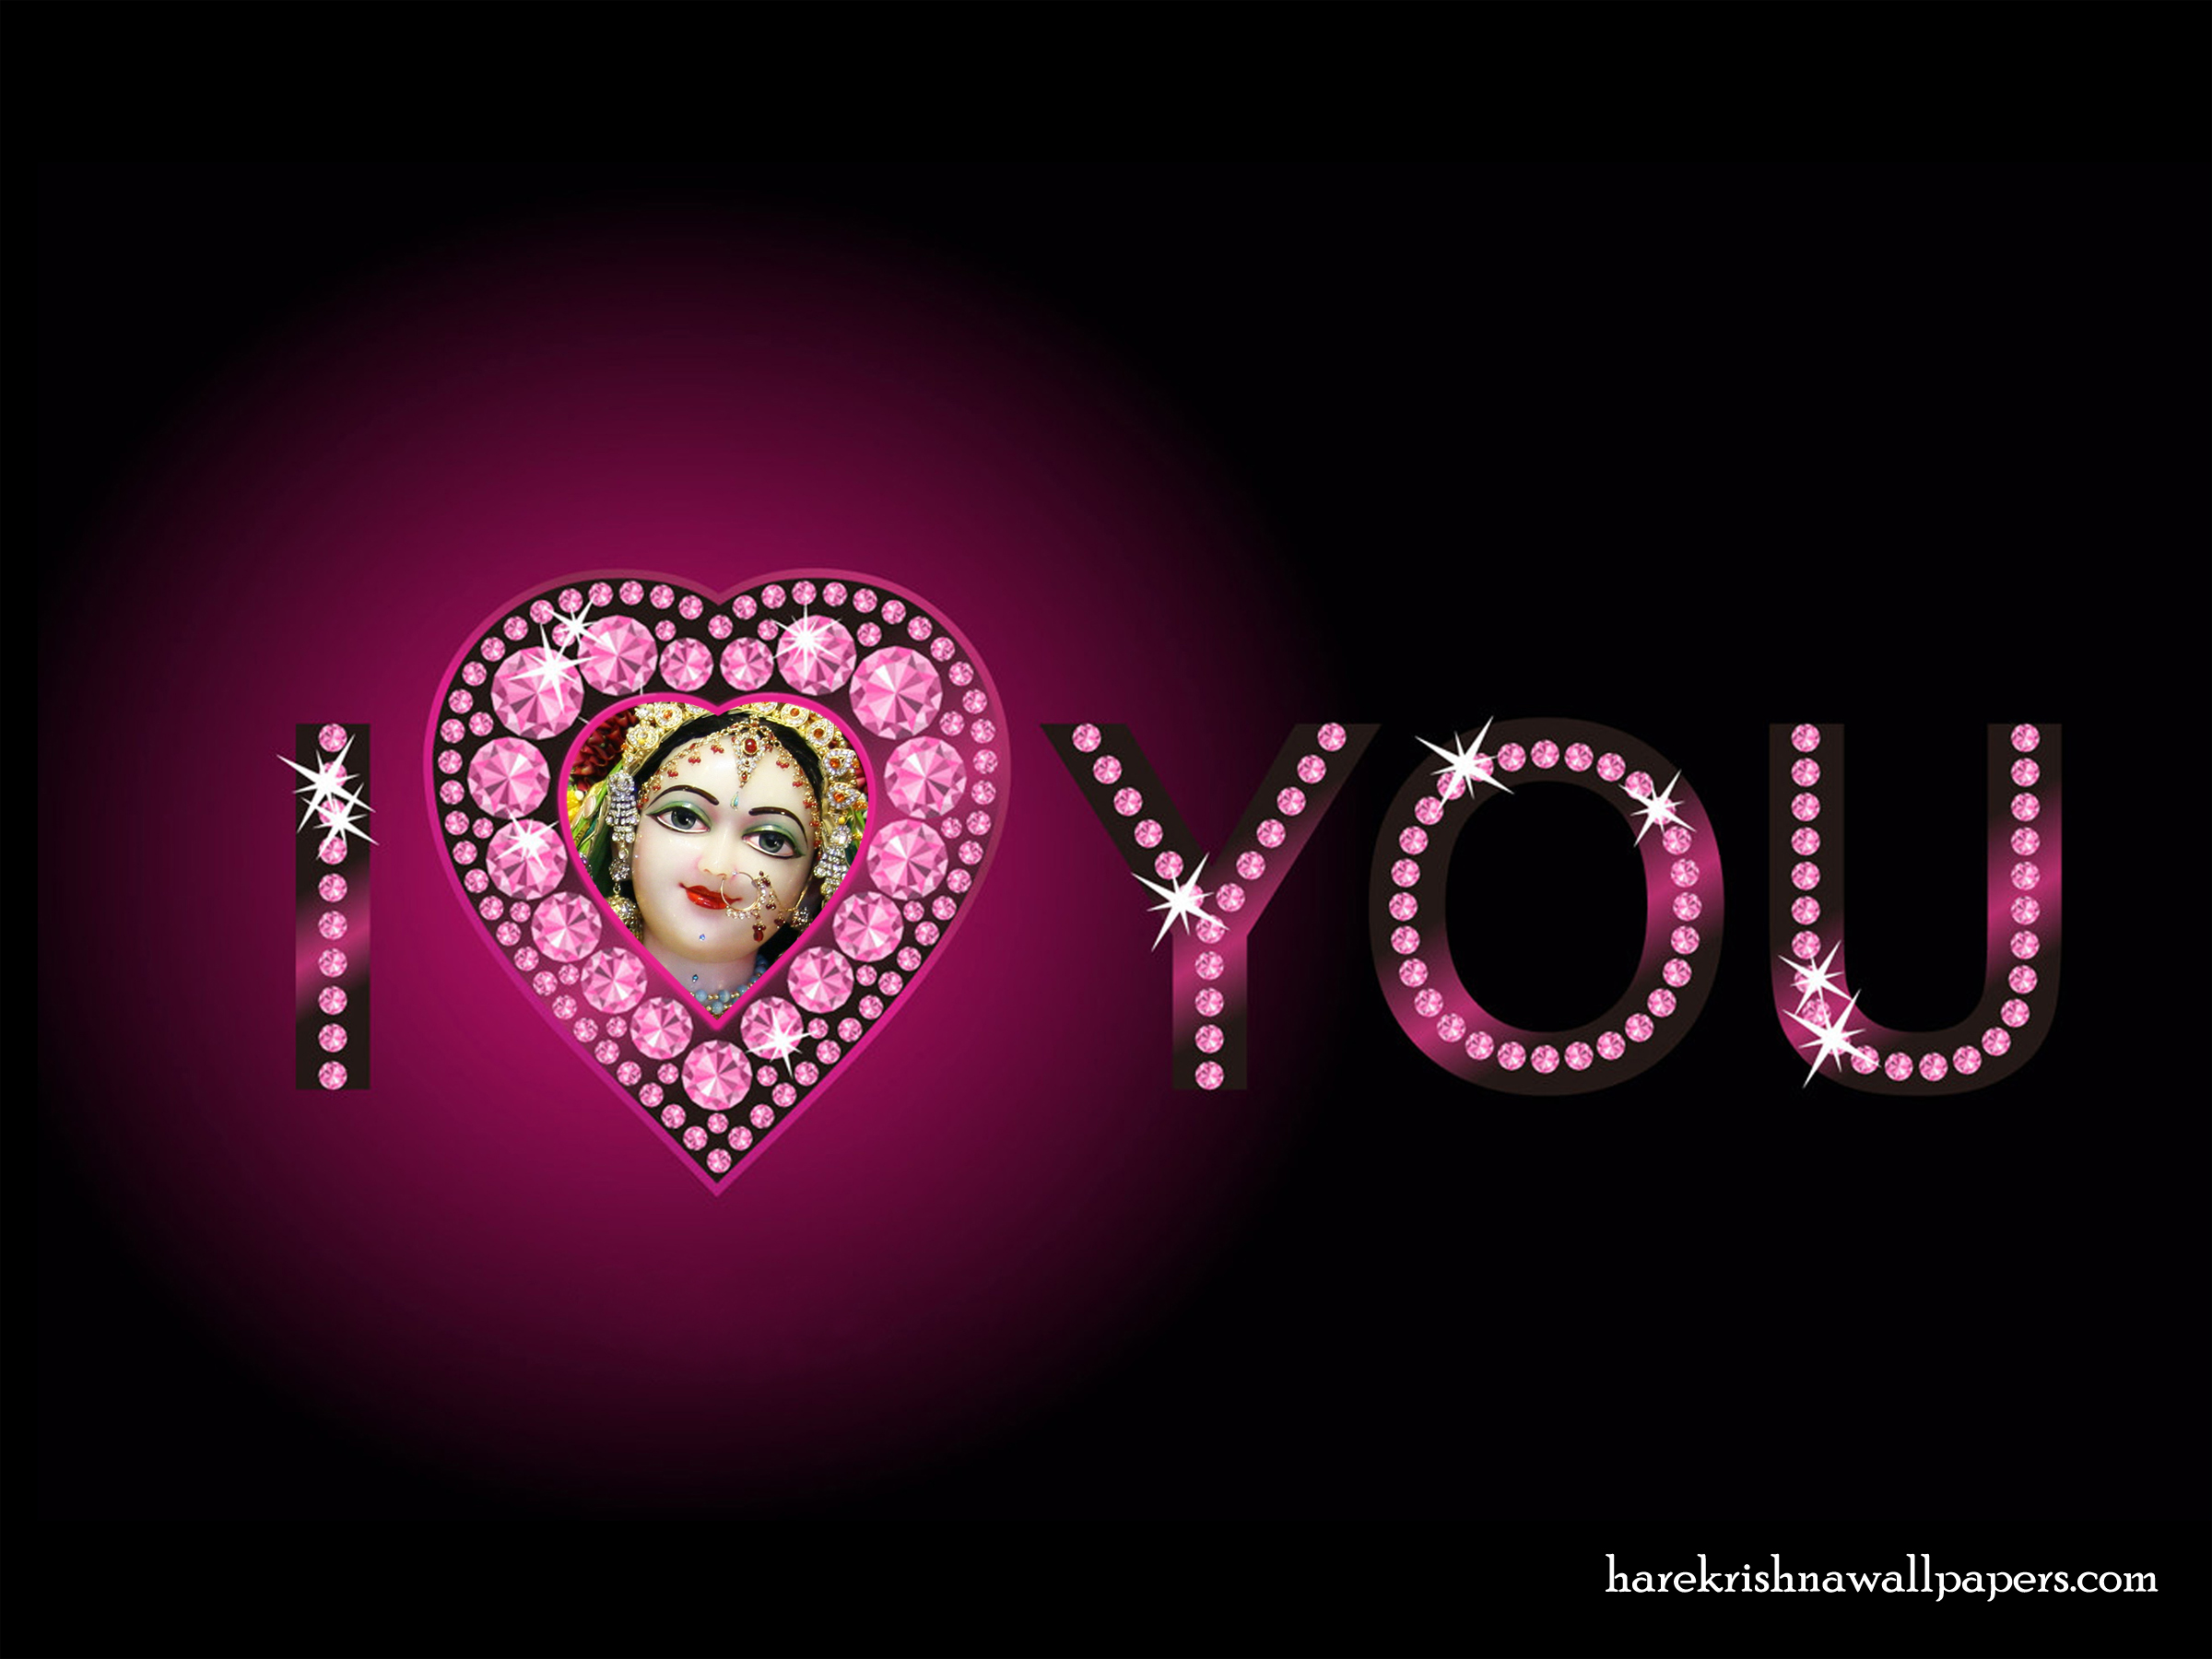 I Love You Radharani Wallpaper (015) Size 2400x1800 Download